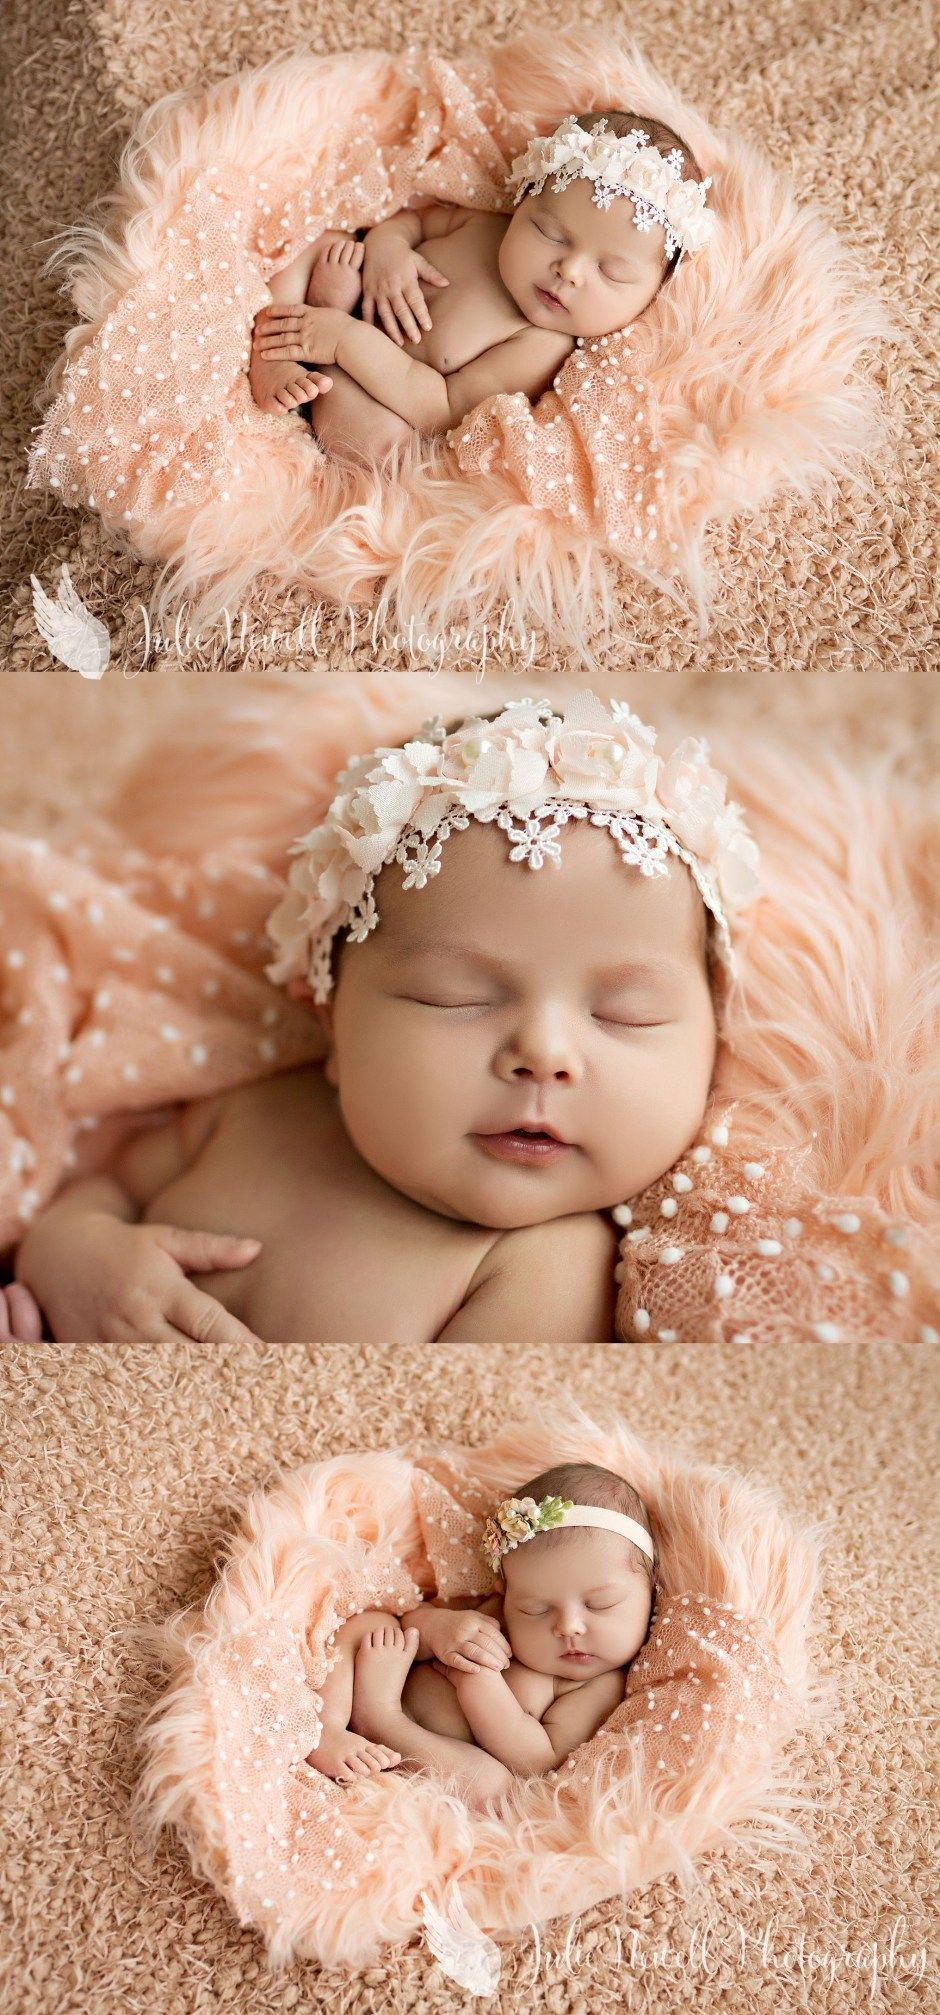 Newborn photographer newborn photography chicago newborn photographer chicago newborn photography best newborn photog maternity and newborn pics